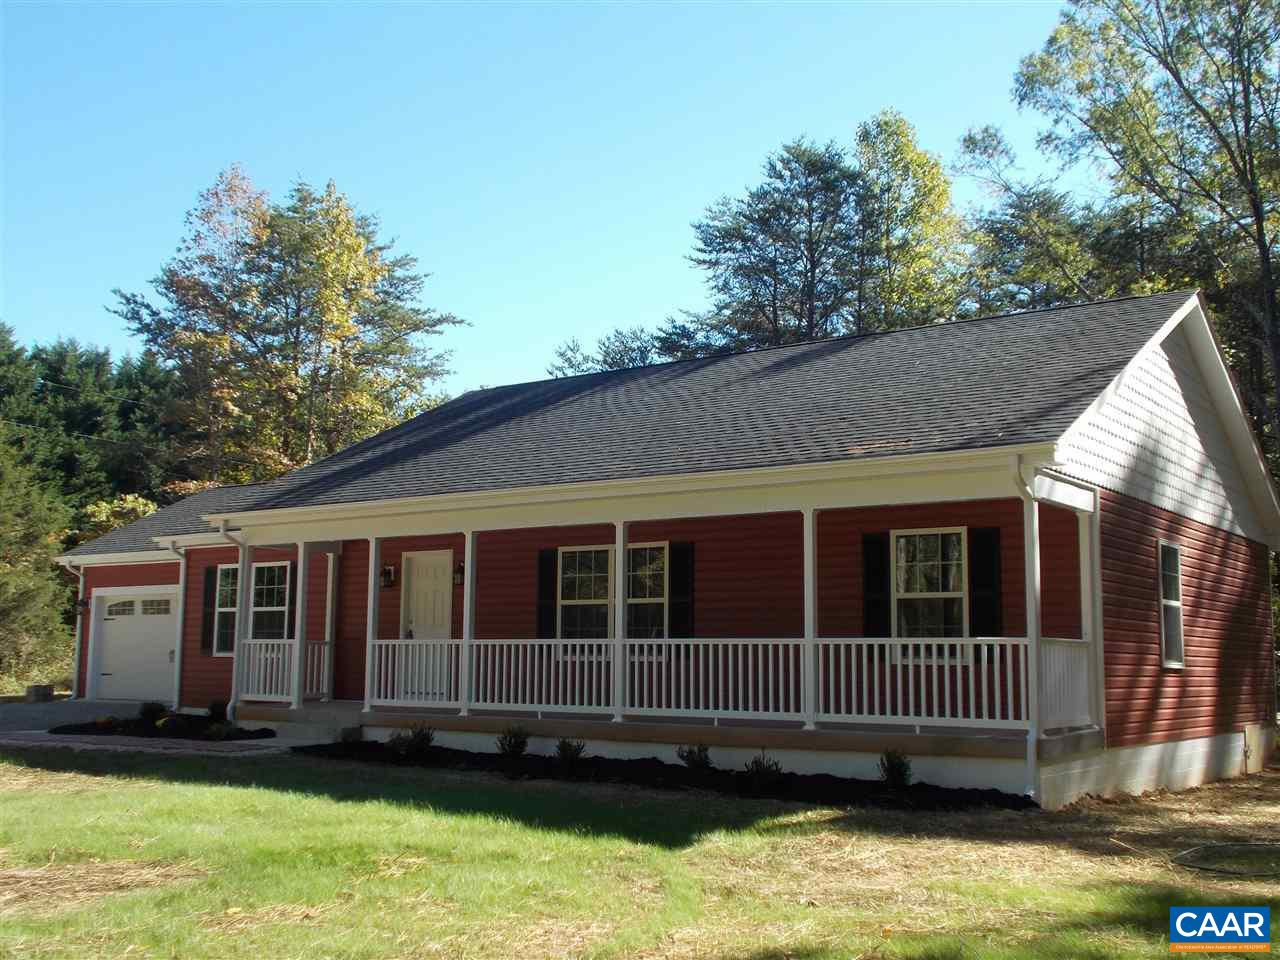 home for sale , MLS #564777, 2180 Gardners Rd